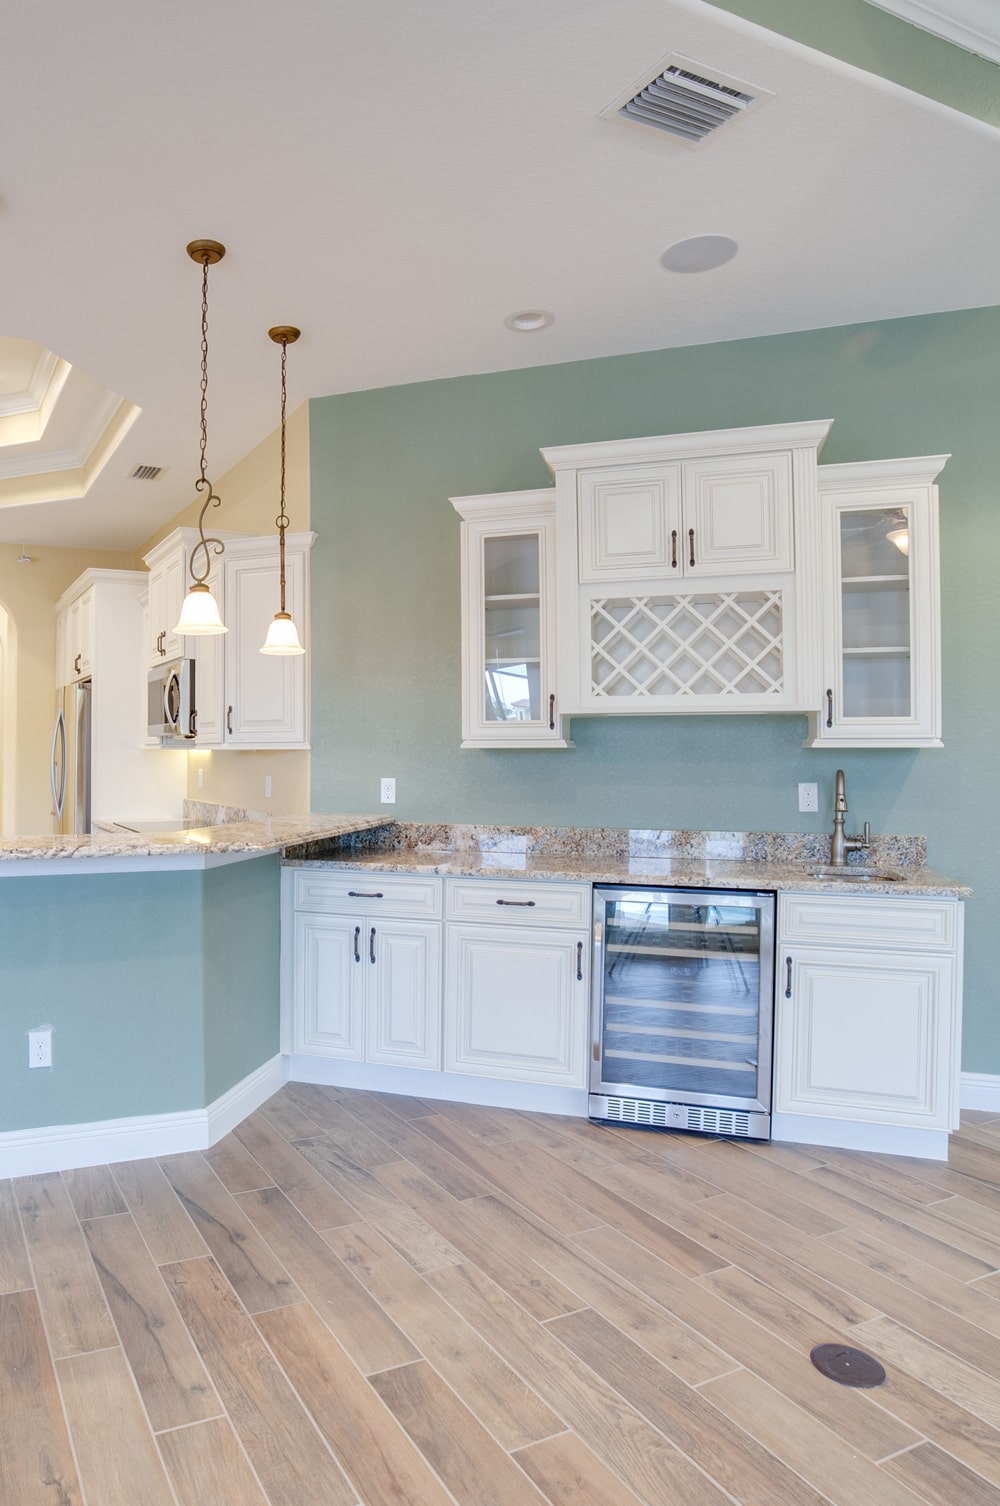 Del Prado Custom Home Builder Cape Coral Indoor Wet Bar Area and Kitchen